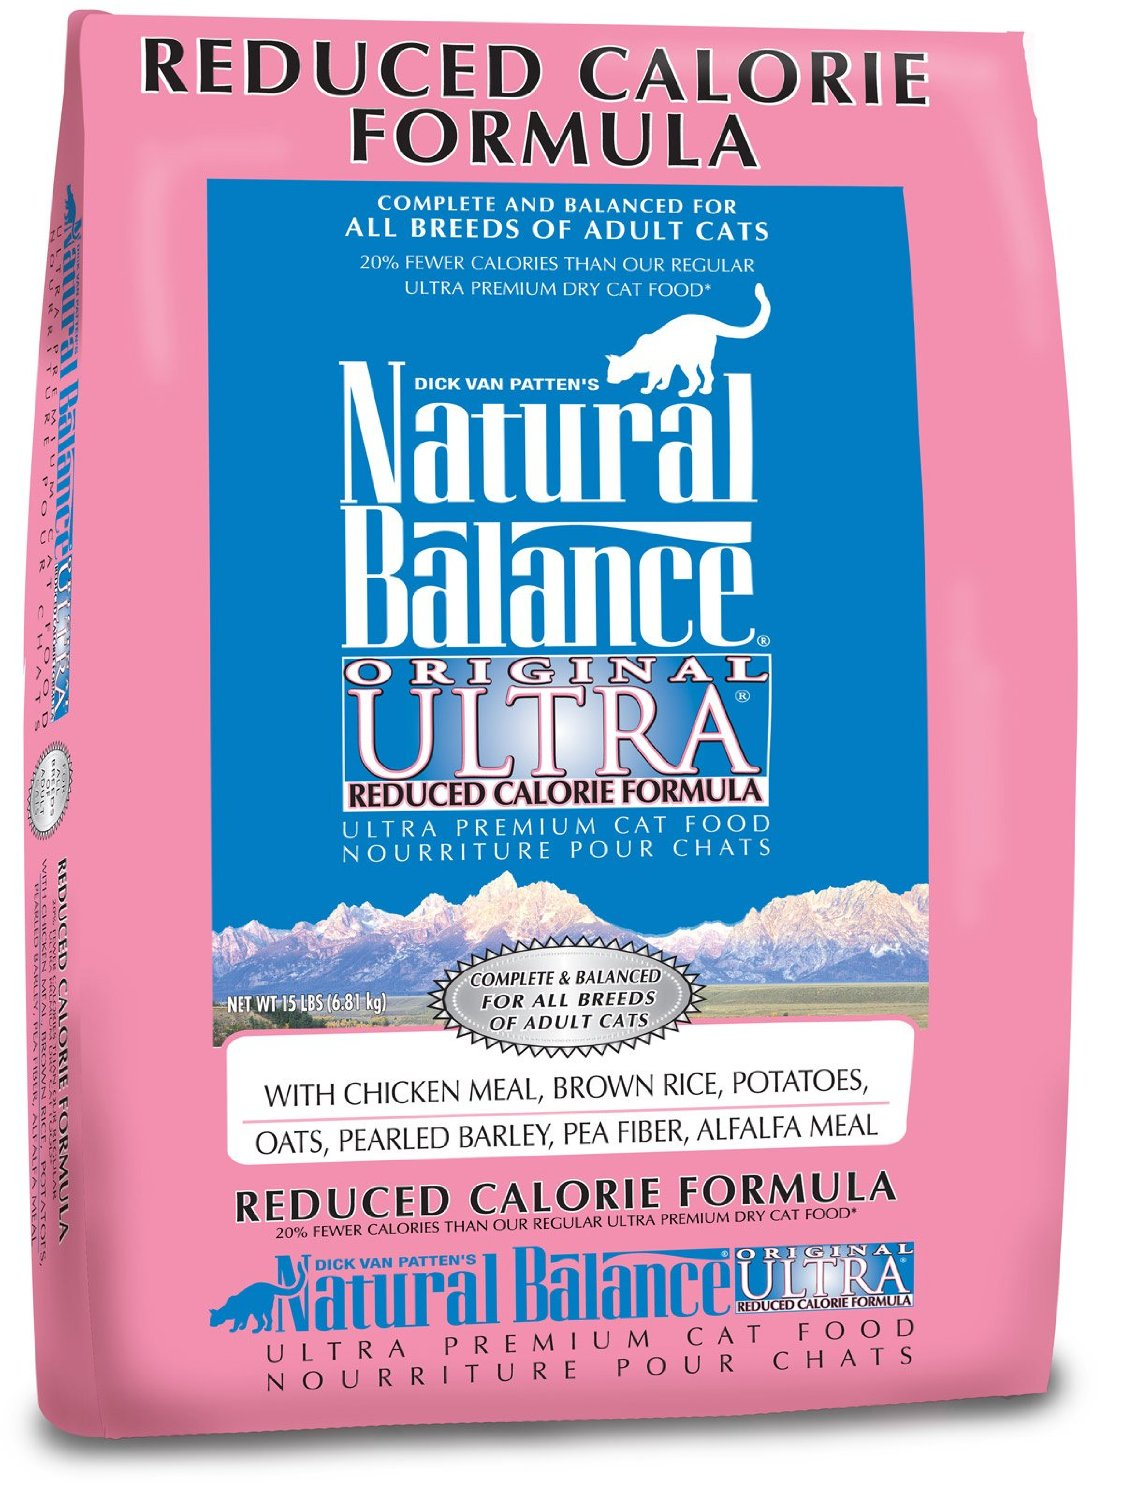 Natural Balance Original Ultra Reduced Calorie Formula Dry Cat Food 15lbs